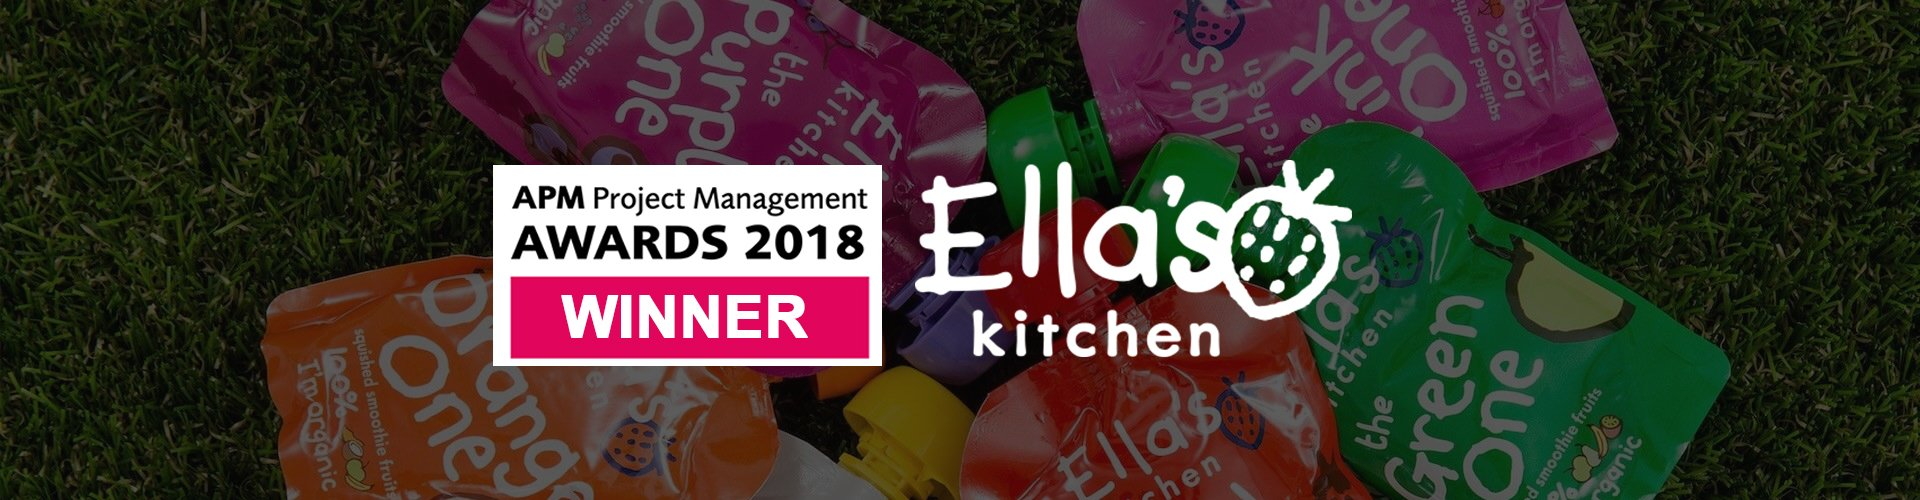 Ella's Kitchen - PMO of the Year 2018 - APM Awards